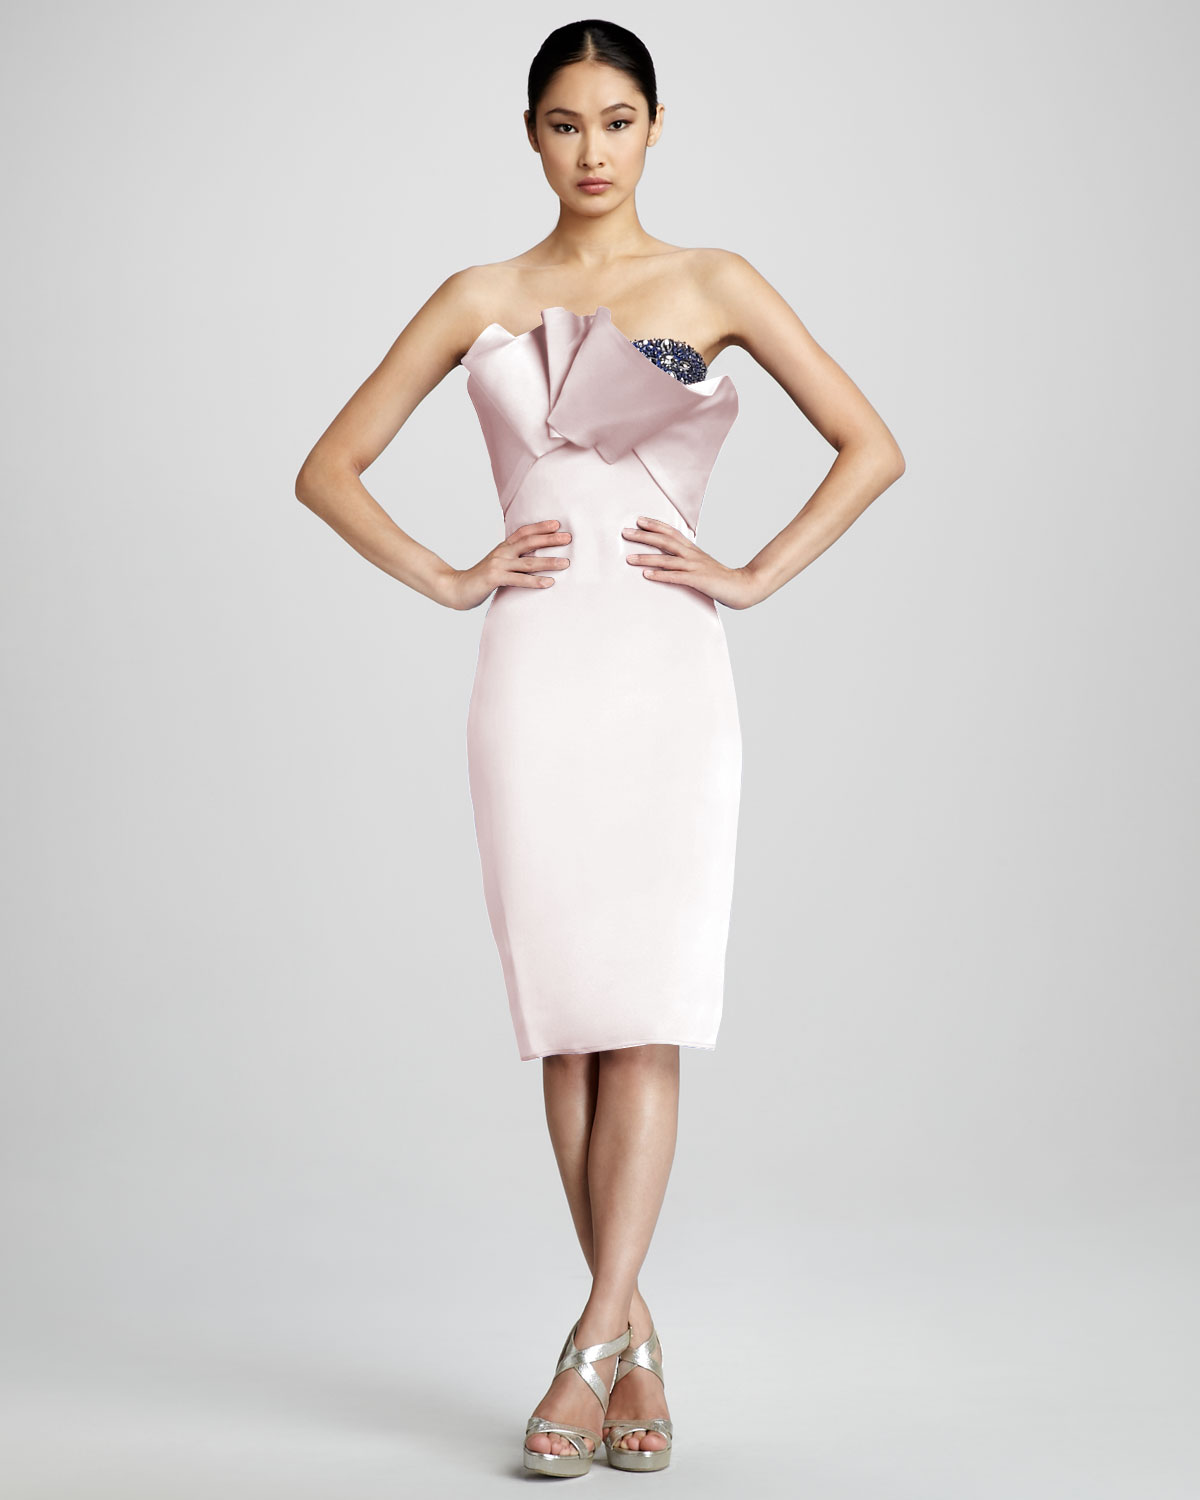 Lyst - Notte By Marchesa Strapless Origami Cocktail Dress in Pink